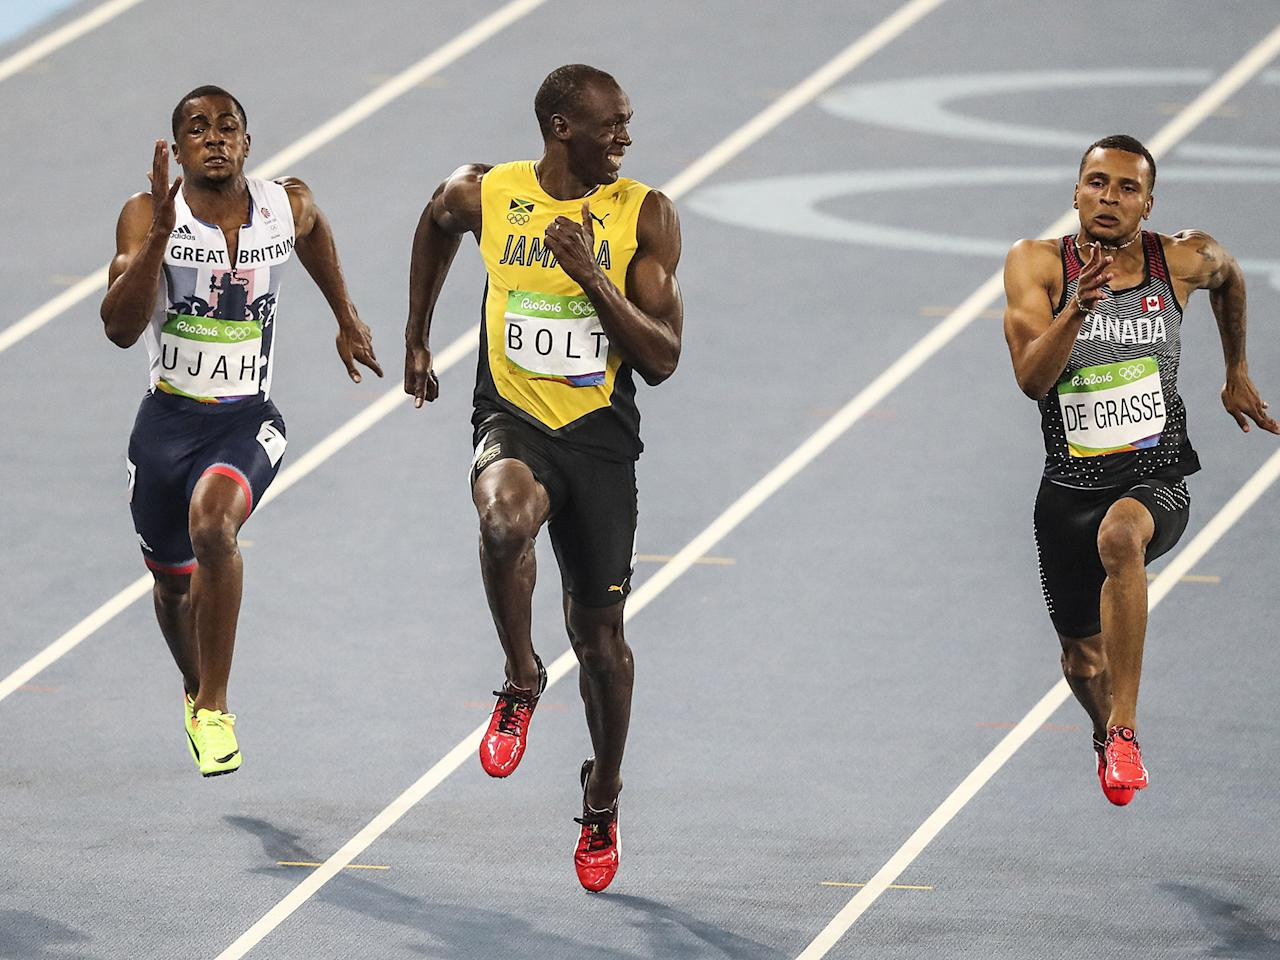 "<p>On Saturday at the world championships of track and field in London, Usain Bolt will run what he has said repeatedly—for the better part of five years—will be the last individual race of his career, in the final of the 100 meters. He is expected to run on Jamaica's 4X100-meter relay a week later, which will be his final appearance on any track. And then he will be gone.</p><p>Probably. Let's get this out of the way right up here: I understand that there is cynicism about Bolt's retirement and a smirking assumption that he will unretire at some point. Sure. Maybe he will. He's only 30 years old (31 on Aug. 21) and there's still good money in being Bolt on the track. But I think there's a good chance this retirement will take. The usual reason: Bolt has never loved training and he can finally put that behind him. (He also doesn't love daylong photo shoots and many of the other duties required of millionaire celebrity athletes, although he's all about many of the other perks). A more tangible reason: He's older and slower—Bolt has run faster than 9.80 seconds in the 100 meters only twice since the 2012 Olympics, at the finals of the 2013 and '15 worlds. His winning time in Rio was 9.81. His untouchable world record of 9.58 is eight years old.</p><p></p><p>He has spent a decade or more managing chronic back issues. The job of being Bolt, while still lucrative, is more difficult. Even if he were to stick around, there's no guarantee that he will keep winning races. There's no guarantee that he will win Saturday (although the rest of the world hasn't torn up the 100 meters this year, either; Bolt's best is only 9.95, but the only sub 9.90 performance this year was a 9.82 by 21-year-old Christian Coleman of the U.S. two months ago at the NCAA Championship meet in Eugene. The withdrawal of Canadian Andre DeGrasse this week further weakened the field). Superman Bolt is done. It's hard to imagine him grinding out another year or two, or all the way to 2020, running in the 9.90s and leaning at the tape to win races. But he could. I'm just betting it won't happen.</p><p>So let's assume this is the end. We as a sports culture are accustomed to saying goodbye to athletes. The routine is well-practiced. Highlights, memories, a final flash of brilliance. Applause. Laughter. Tears. Curtain drops. We are insulated from genuine, deep sadness by the security that comes from knowing that greatness replaces itself. Bird and Magic left, Jordan came along. Jordan left, Lebron came along, and then Curry. Etcetera. Pick your sport. Track and field, which unfolds in ponderous afternoons and evenings, translated—but also burdened—by arcane statistics and worshipped by an increasingly vertical audience (like many Olympic sports in this regard), derives any crossover appeal from the superstars who periodically arrive at the starting line and nudge their way into mainstream. Bolt arrived, as a superstar, in 2008. And he didn't nudge his way anywhere; he exploded.</p><p>It started with a single race, the 2008 Olympic 100-meter final in Beijing. On that night Bolt separated from the fastest men in the world—all of them athletic freaks, let's be honest—with stunning ease. He unfurled his entire 6'4"" frame and swallowed ground in giant chunks. (I've since seen this effect, close-up, in training; it's intoxicating, like CGI in real life. Spikes ripping over the track, a body passing, generating a breeze. Bolt is not just fast, he's a weather system). What Bolt did after that race was even more significant: He danced, posed and partied. And that party has gone on for a decade. His races are like concerts, building to a crescendo at the gun, followed by a long, satisfying encore, with selfies for all. He has been the rare athlete who seems both transcendent and accessible, and he has made it all look fun (it has been) and easy (it hasn't been).</p><p>And never forget this: Bolt has been at his absolute best under the withering pressure of championship sprinting. He ran 21 global championship races from 2008-16, the 100 meters, 200 meters and 4X100-meter relay at three Olympics and four world championships, and won 19 of them. His two losses resulted from a false start at the 100 meters in the 2011 worlds and from the disqualification of a Jamaican teammate who tested positive for steroids after the 4X100-meter relay at the 2008 Olympics. His three fastest 100-meter times, and five fastest 200-meter times, and all three of his world records, came in championship competition.</p><p>So let's be clear about this: There is no replacing Usain Bolt.</p><p></p><p>This is where the narrative turns less cheery. In these last 10, rollicking years, Bolt has become the most famous and successful track and field athlete in history, a wealthy international celebrity who is almost universally beloved. But in those 10 years, Bolt has not made track and field more popular, <em>he has made Usain Bolt more popular,</em> and fabulously so. The residual effect will be negligible. When Bolt leaves, he takes his popularity with him and closes the door on his way out. (Yes, track officials have expressed a desire for Bolt to remain present, and perhaps there's something to be gained from having Bolt in the stadium for future meets, but nobody wants to watch Springsteen sitting in the front row tapping his feet; they want to watch him sing ""Jungleland."").</p><p>On the occasion of Bolt's retirement, it's worth thinking about the state of track and field before Bolt went viral in Beijing. (Bolt had been a promising sprint prodigy in his teens, but he became something else altogether in '08). In 2006, Justin Gatlin of the U.S., the fresh-scrubbed Olympic 100-meter gold medalist from 2004 and newly minted world record holder, was nailed for a positive PED test and slapped with an eight-year ban (eventually reduced to four years). Gatlin was in many ways the new face of track and field, expected to help guide the sport away from the Marion Jones debacle. (Track is <em>always </em>seeking to distance itself from the latest doping scandal… more on this to come).</p><p>In the summer of 2007, Tyson Gay of the U.S. won the 100, 200 and 4X100 relay at the worlds in Osaka, Japan. But Gay was a reticent star (and would later suffer his own steroid indignity). It was Bolt who made everyone forget about Gatlin and all the other doping scandals, and he has been performing some form of this duty for a decade. Bolt has been track's safe space, where the sport's fans go to forget about doping and diminishing widespread appeal. Systemic Russian doping scandal? No problem, we've got Bolt. Nike Oregon Project embroiled in controversy? No problem, we've got Bolt.</p><p>For every problem posed, Bolt has been the answer. And a good answer. A life-affirming answer. An answer that makes you smile and then laugh.</p><p>Yes, I'm aware that a vocal minority in track and field believes that Bolt has been doping all along. He became too fast, too quickly in the 100 meters and dropped his times too far in the 200 meters. Plus, Jamaica's domestic anti-doping system has been less than rigorous. There's plenty of circumstantial evidence to carry a conversation about whether Bolt is clean or not. I don't know if Bolt has been clean throughout his career. I don't know if <em>any </em>athlete has been clean throughout his or her career, excepting those with positive drug tests, which constitute only a small portion of those who are actually doping. There are other theorists who believe that even if Bolt had been caught, those records would have been quashed by the forces that stand to gain from his continued greatness: Shoe and apparel companies, television networks, international governing bodies. Absent hard evidence, I choose to stand at the opening of that rabbit hole and not venture down. It's too deep and too dark.</p><p></p><p>More importantly, the vast majority of the public—track fans and others—have chosen not to question Bolt. He's infectious. We want his performances to be real, so we convince ourselves that they are. He's a very tall man with the stride frequency of a smaller man, a bizarre combination of skills that just might enable somebody to run 9.58 seconds for 100 meters. I've spent time with Bolt on numerous occasions. I like the guy. Does that mean he's been clean all these years? Nope. It just means I want to give him the benefit of the doubt and I'm far more cynical than most people watching Bolt run.</p><p>The track and field world that Bolt will leave behind next weekend is consumed with the issue of doping, as much as at any time in its history. (On this subject, entering the London meet, I recommend <a rel=""nofollow"" href=""https://ec.yimg.com/ec?url=http%3a%2f%2fwww.independent.ie%2fsport%2fother-sports%2fathletics%2fmoney-trumps-morals-in-murky-world-of-athletics-35995616.html%26quot%3b%26gt%3bthis&t=1503562128&sig=83kzap3fanQ_UZRkG.DcKw--~D piece written by Cathal Dennehy</a> in the <em>Irish Independent. </em>U.S. media are intermittently diligent in addressing the specter of doping in track and field; European media—and fans—are relentless).</p><p>For a long time, track meets around the world have been conducted in a shadow of doping innuendo that just sucks the joy out of the competition. Whenever a time is just a little too fast, eye rolls cause the bleachers to sway. It's a thing. A very real thing, and not just among media. Among athletes, too. It's so ingrained in the culture of the sport that everybody just speaks in a sort of doping shorthand.</p><p></p><p>The Russian scandal, along with the revelations of inadequate testing in Ethiopia, Jamaica and Kenya have created a sense of almost overwhelming cynicism. Jama Aden of Somalia, a former world class runner who now coaches Ethiopian world record holder Genzebe Dibaba, was arrested last summer and doping materials were found in the room of one of his assistants. (Yet Dibaba has never tested positive). Coach Alberto Salazar, a legendary name in U.S. distance running, and the Nike Oregon Project remain under investigation by the U.S. Anti-Doping Agency.</p><p>During the London worlds, more than three dozen athletes will receive reallocated medals that are the result of retroactive doping disqualifications from previous world championships. Among them is Kara Goucher, who won the bronze medal at the 2007 worlds (a breakthrough performance that in many ways started the rebirth of U.S, distance and middle-distance running). Goucher has been elevated to the silver through the disqualification of second-place finisher Elvan Abeylegesse of Turkey. Francena McCorory of the U.S. will receive a bronze medal from the 2011 400 meters (she had finished fourth) and the U.S. women's 4X400-meter relay from 2013 will be elevated from silver to gold.</p><p>These are good and righteous corrections. Dopers are stripped and deserving athletes are rewarded. But, sadly, and there is no way around this, these ceremonies also serve to focus on the reality that, in the moment, what track fans are watching is often not genuine. Reallocation is a paper correction. Nobody can give Goucher the joy of crossing that line second or McCorory the thrill of winning an individual medal at a world championship. Nobody can refill the stadium and give the fans an untainted competition.</p><p>It's important to say that track and field is trying to cleanse itself. The enormity of that task can be dispiriting, but more to the point in the present, it leaves the sport in a constant state of painful transition. Only by talking about eradicating doping can doping be eradicated, but that talk keeps the spotlight on doping and deepens the sense that track is irretrievably dirty. (It's not; many athletes compete clean). Reallocation is big these days. It's important and just. But it can get out of hand, too. Last week the London <em>Daily Mail </em>published a story, pegged to the five-year anniversary of the London Olympics and the return of the sport for the 2017 worlds, asking if the track and field competition in 2012 was ""the dirtiest ever."" The <em>Daily Mail </em>research concluded that 87 London finalists—one out of every seven—had previously committed a doping offense and that another 138 had a ""connection"" to doping, through a coach or agent or mention in the release of documents by the hacking group Fancy Bears.</p><p>Subsequently, former U.S. hurdler Lolo Jones tweeted this:</p><p>And then this:</p><p>Jones finished fourth in the 100-meter hurdles in London, an impressive performance after an injury- and drama-filled season. (You might remember). The three women who finished in front of her that night were Sally Pearson of Australia (gold), Dawn Harper of the U.S. (silver) and Kellie Wells of the U.S. (bronze). The only connection to doping for any of these three women came in February of 2017, when Harper received a three-month suspension, after a masking agent was found in a urine specimen collected in December of 2016. It's not good that Harper had a masking agent in her urine, but does it make sense that Jones is apparently asking for Harper's medal from more than four years earlier? This is among the unintended consequences of aggressive reallocation. If you happen to chat up Salazar at a pub, somebody's gonna come after your medals from back in the day.</p><p>Back to the original point: Usain Bolt gave the sport regular and euphoric reprieves from the drumbeat of doping investigation and reveals. When he ran, there was almost exclusively elation. His departure leaves only more room for the negative.</p><p>It would be reassuring to suggest that there is an athlete in line to replace Bolt. The logical choice is long sprinter Wayde van Niekerk of South Africa. Last summer in Rio, Van Niekerk's world record 43.03 in the 400 meters, from the blind Siberia of Lane 8, was one of the most remarkable footraces ever run by anyone, anywhere. He is a stunningly gifted athlete who, barring injury, is likely to become the first human to run one lap in less than 43 seconds and could possibly challenge Bolt's world record of 19.19 seconds in the 200 meters. But there are holes in this projection: The 200 and 400 are not the 100, just ask Michael Johnson, who never became quite as famous as Carl Lewis. Also, to be the next Bolt, you have to not only run as fast as Bolt has run, but you have to do with Bolt's style. Van Niekerk is reticent and humble, the kind of athlete who would hand the football to referee after scoring and softly thank God and family afterward. Which is all fine.</p><p>And the truth is, <em>nobody </em>has Bolt's style. Nobody looks like Bolt running down the track, nobody rolls like Bolt afterward. He has been one of a kind and he will remain one of a kind. His presence gave track and field a 10-year reprieve, and now that reprieve is over.</p>"